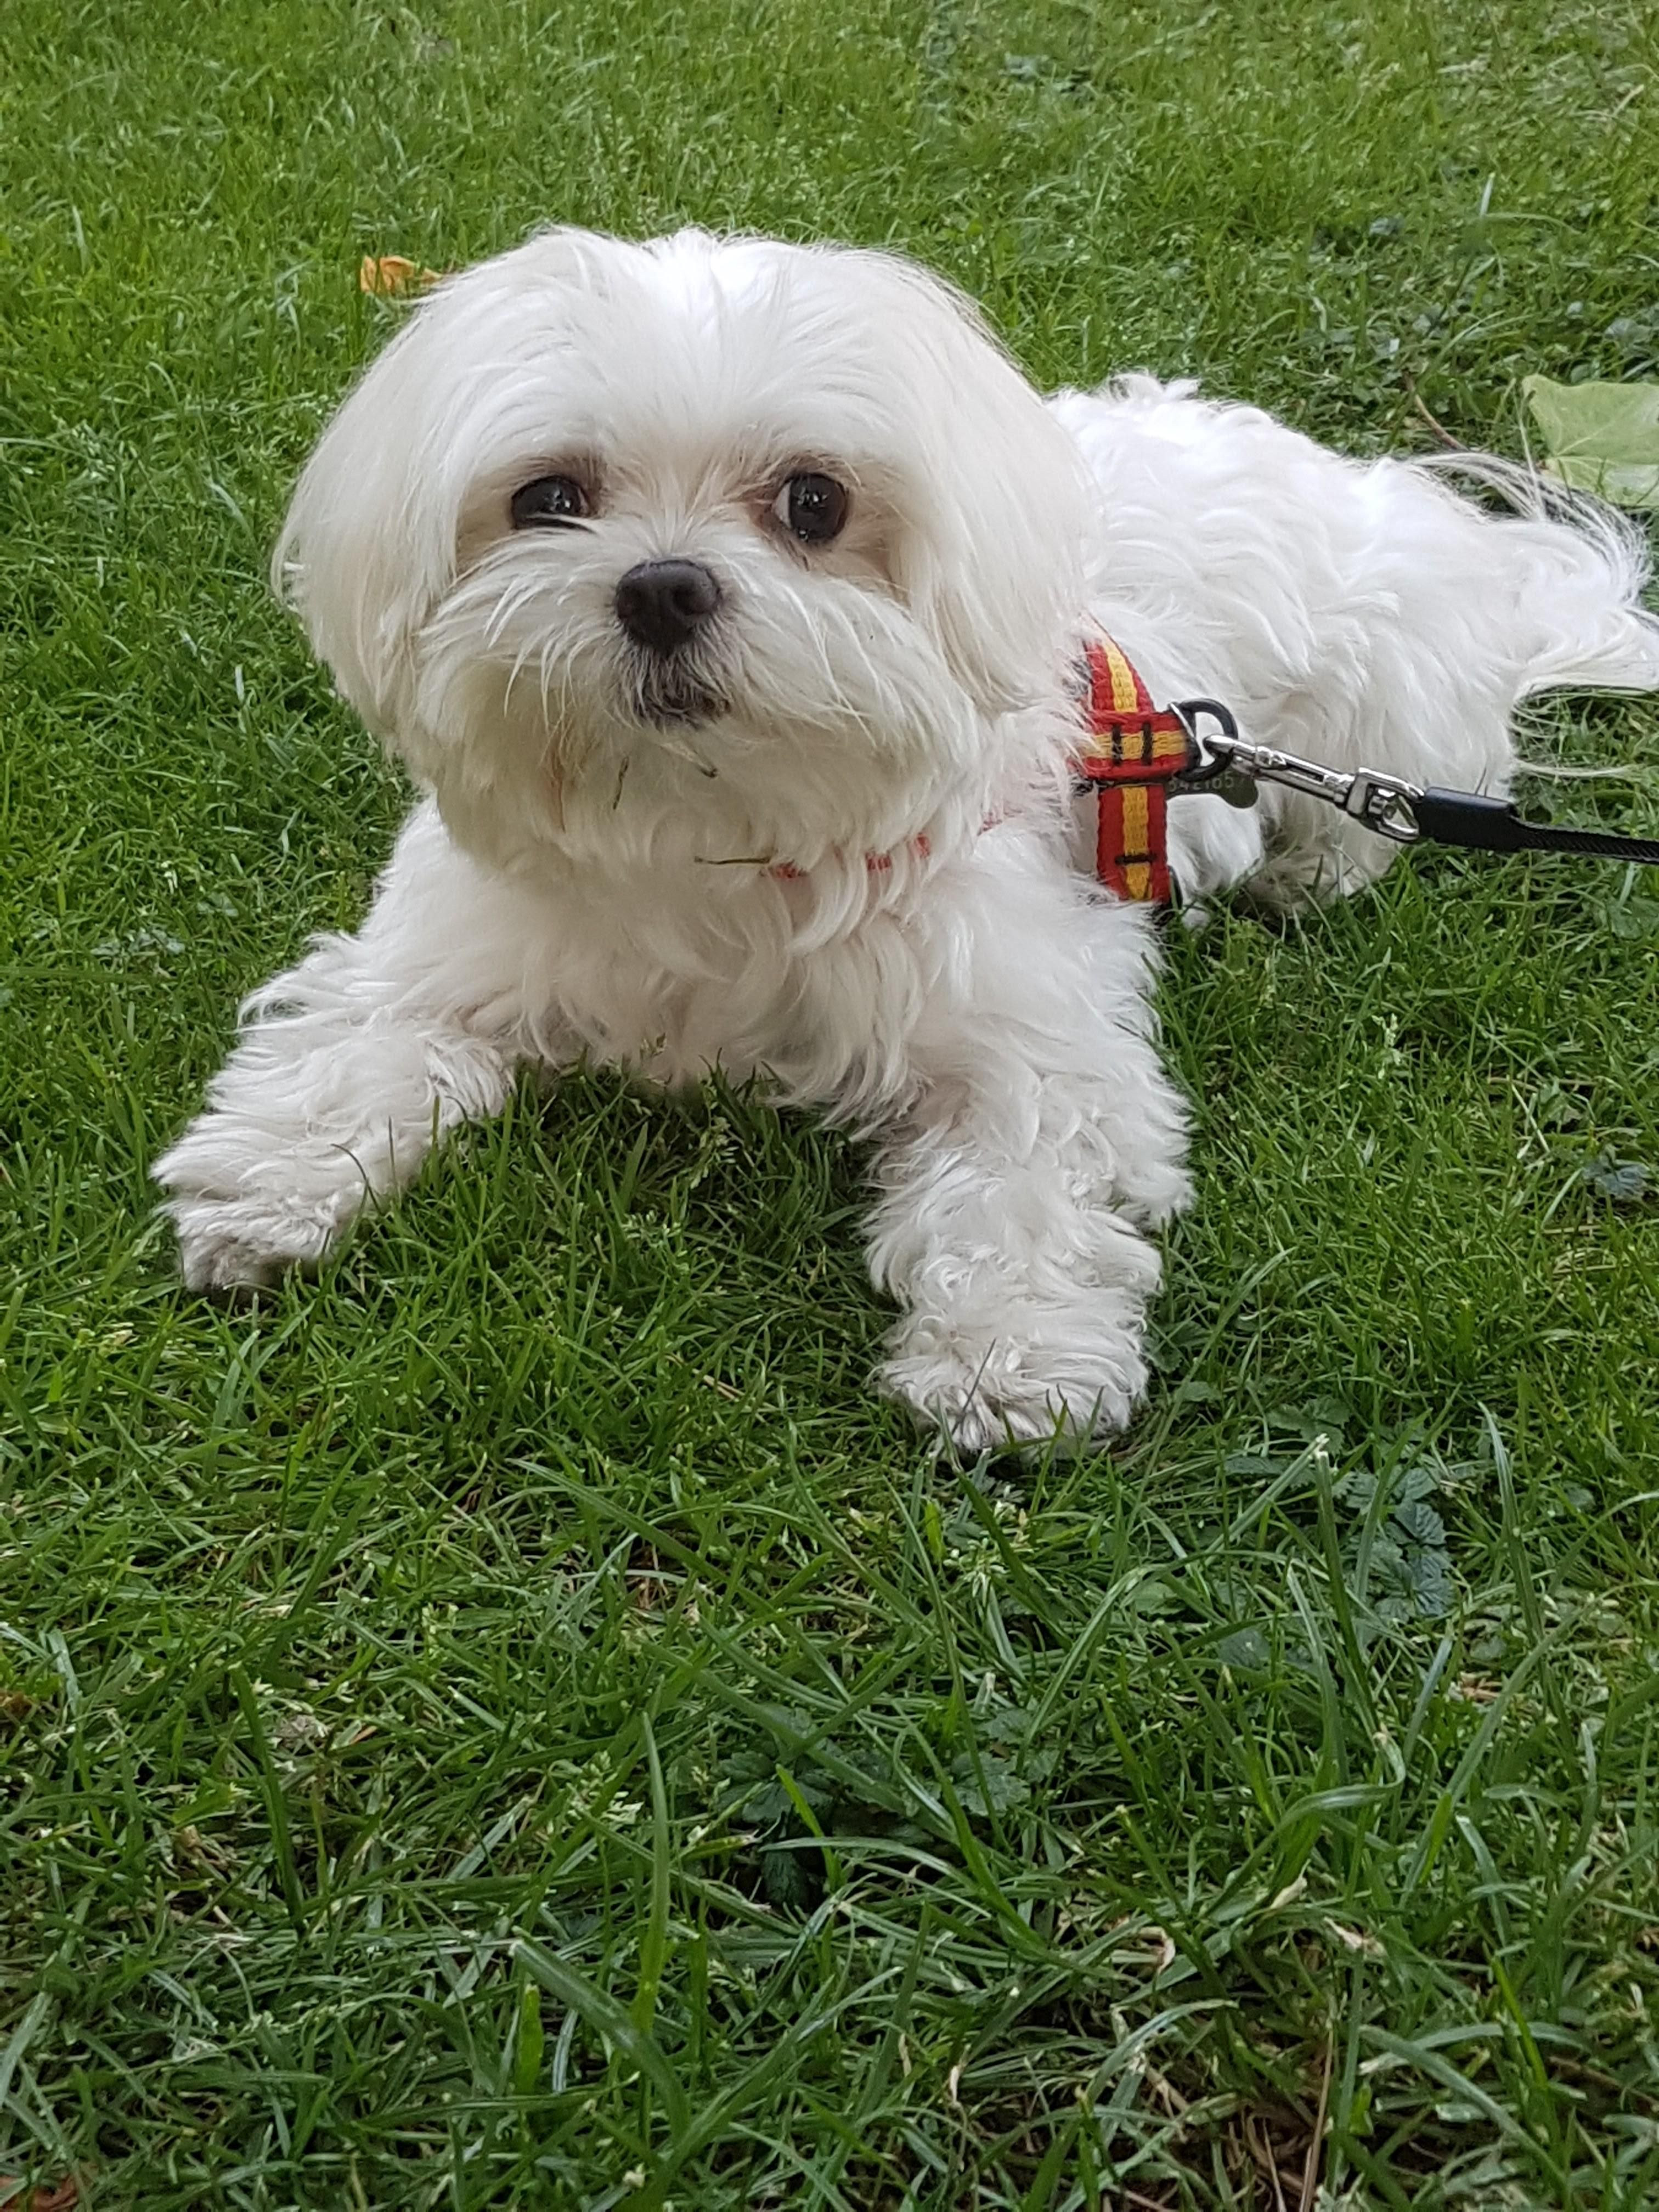 Hi Reddit Meet My Maltese Yuko We Adoted This Little Guy 2 Years Ago He S The Cutest Thing Dogs Kitty Lovecats Kittens An Maltese Cat Day Maltese Dogs